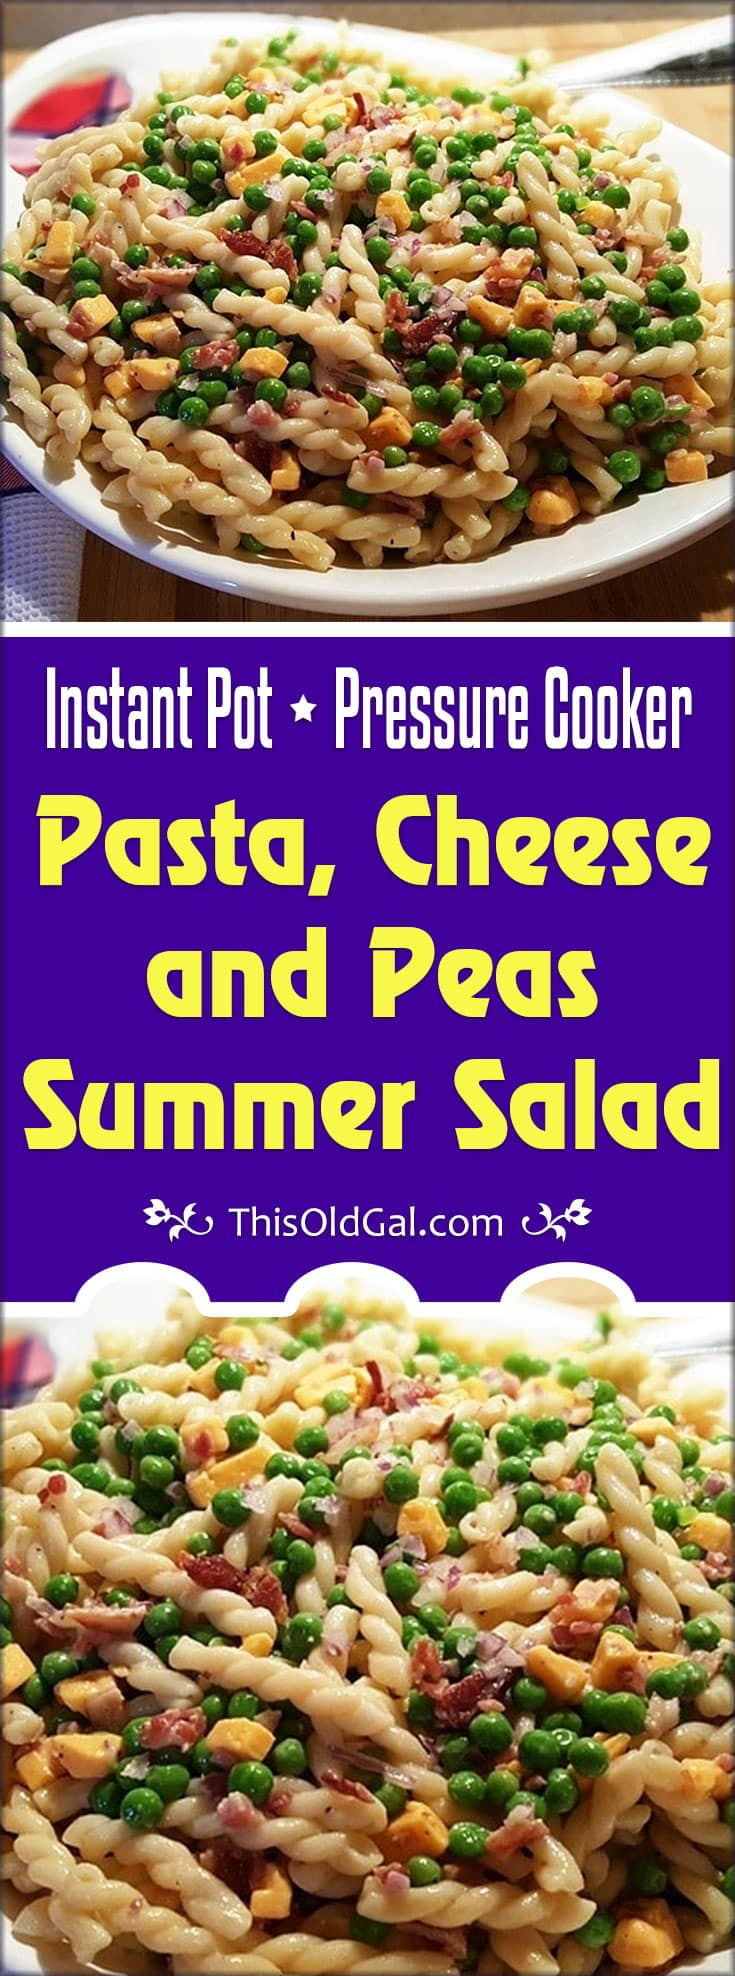 Pressure Cooker Pasta, Cheese and Peas Summer Salad